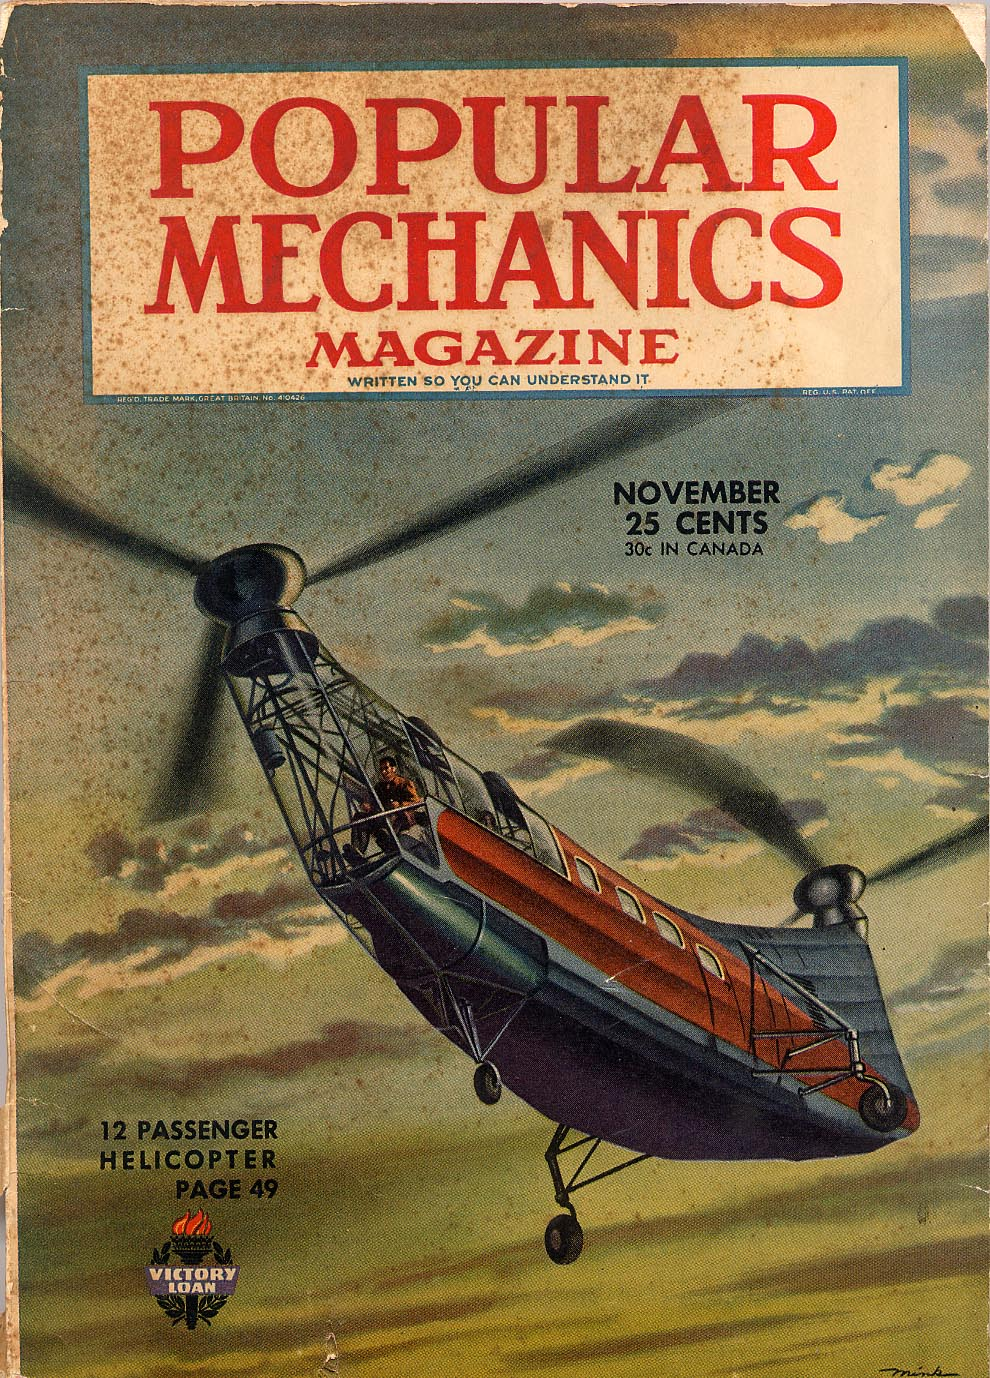 Cover of Popular Mechanics Magazine Nov. 1944